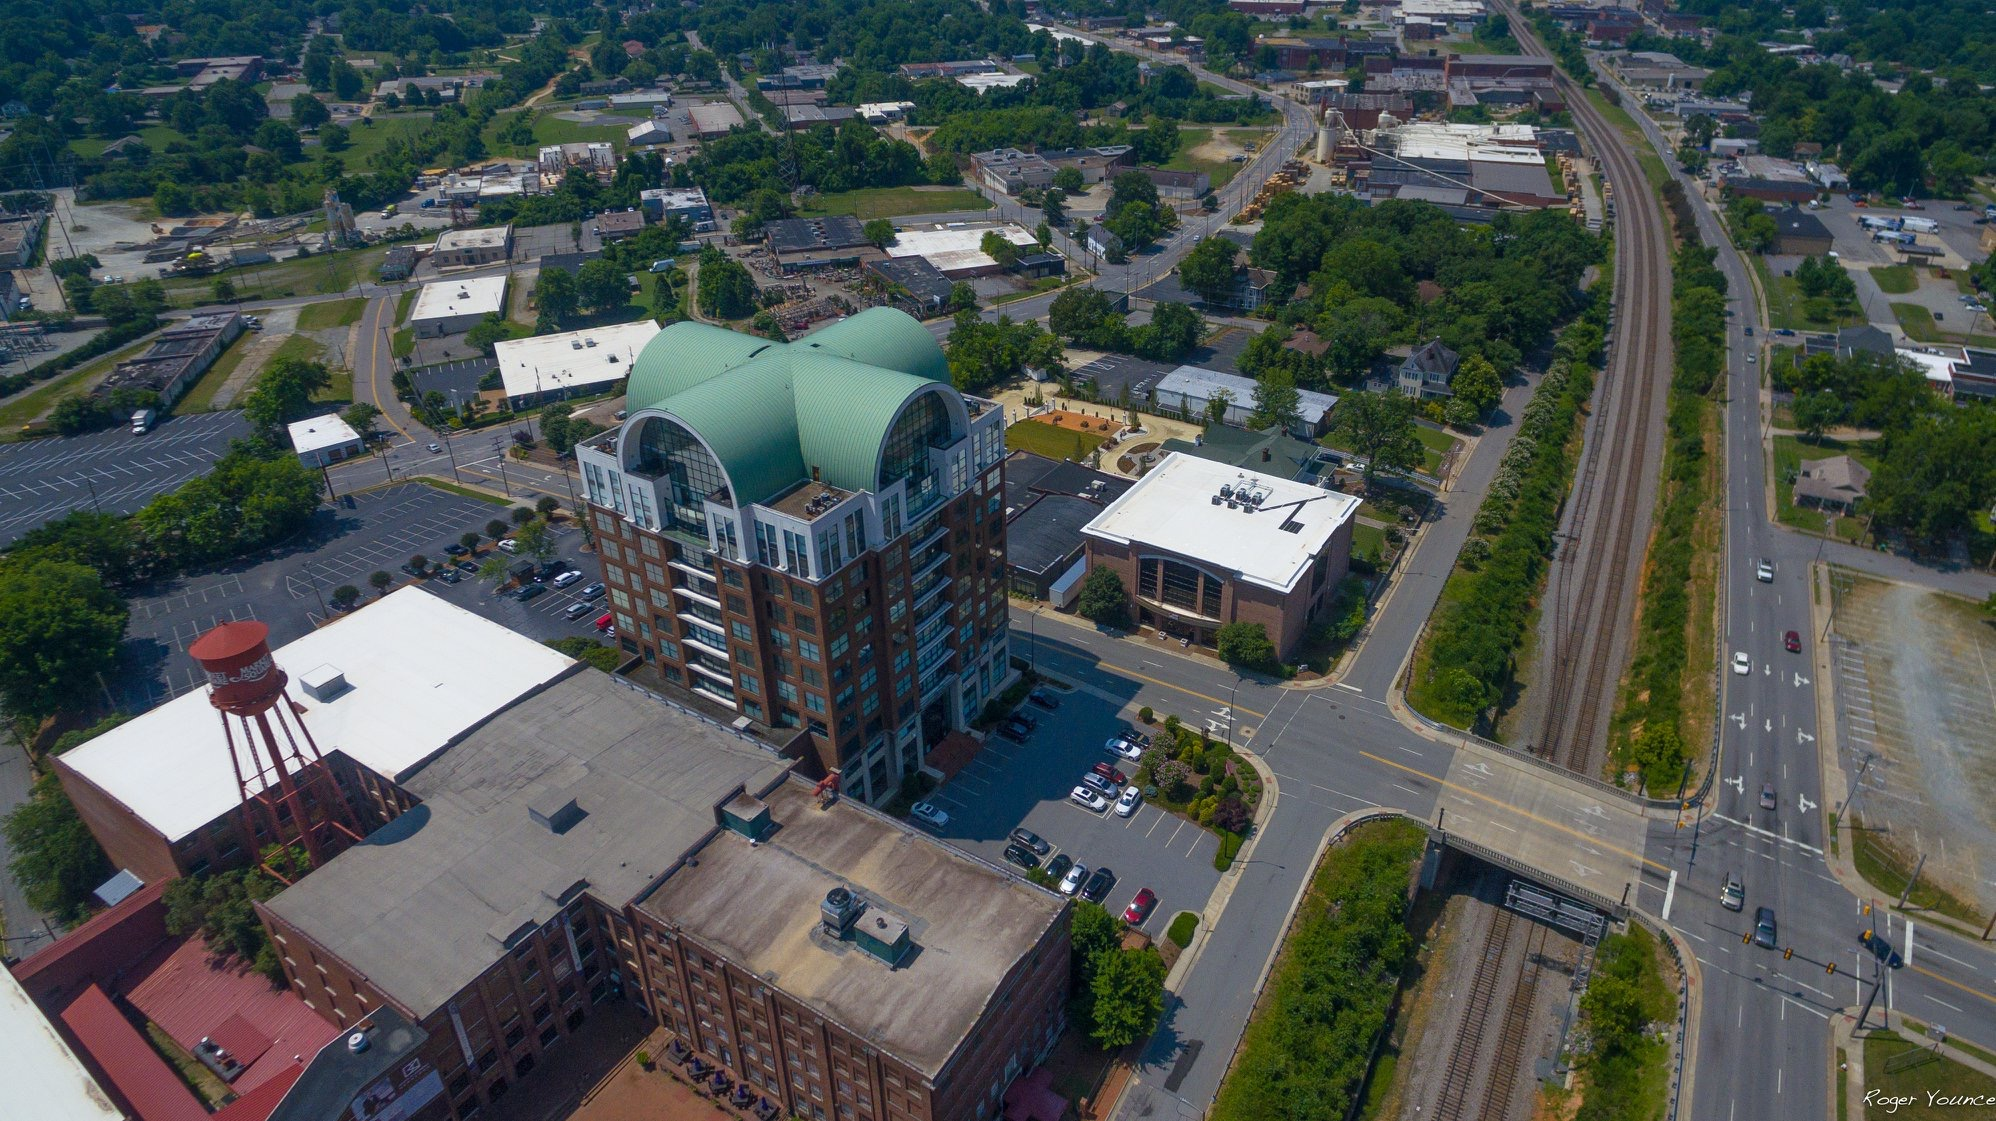 Aerial View of Downtown High Point in North Carolina